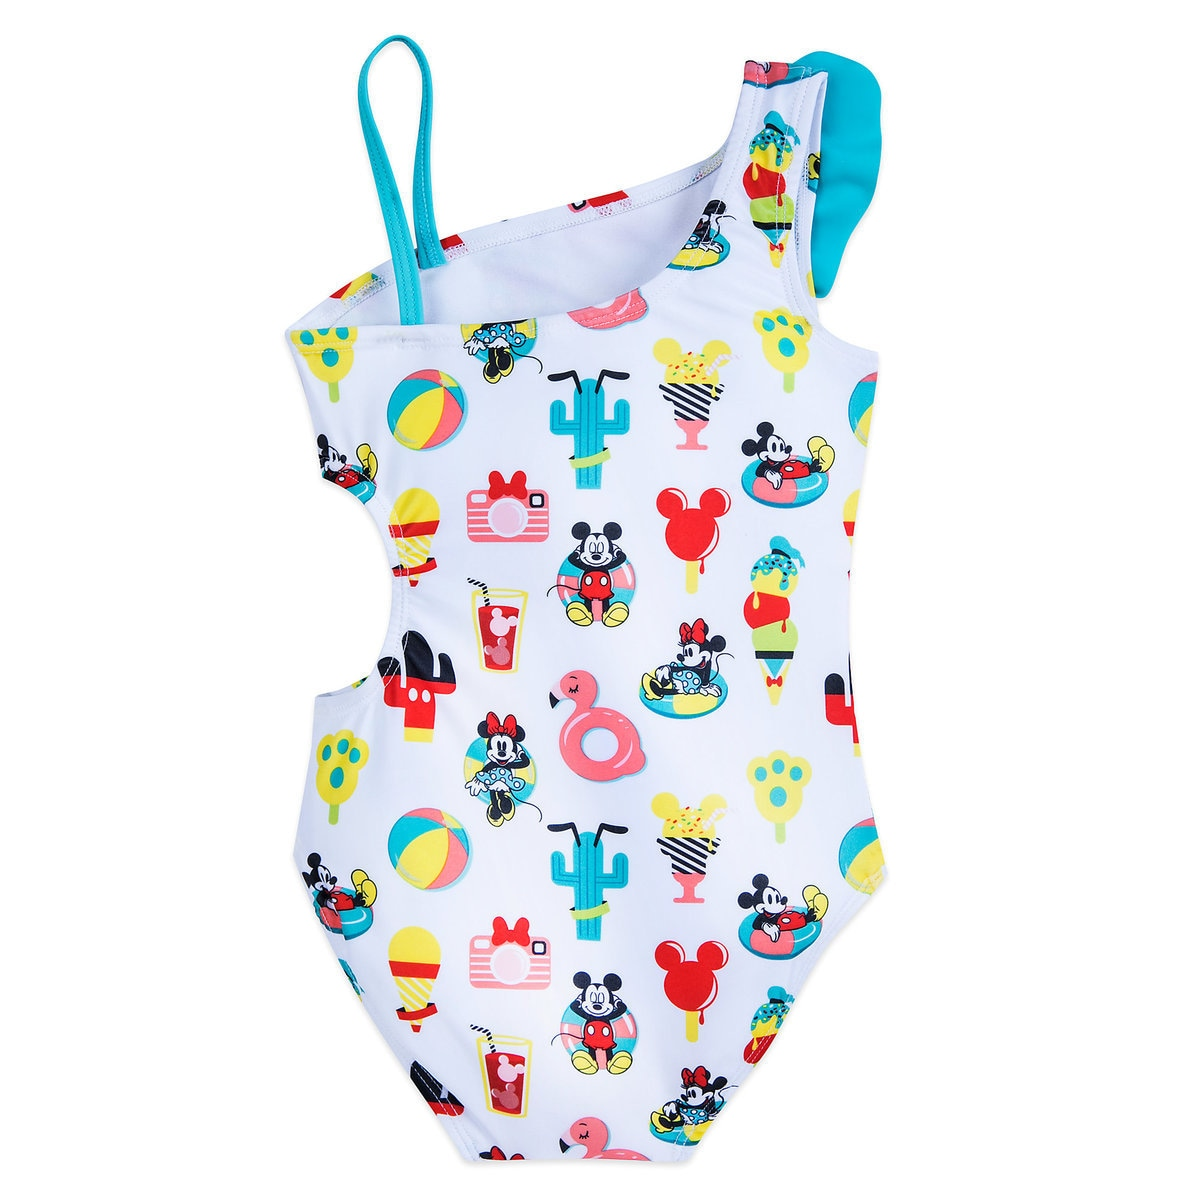 68d2de145c1c2 Product Image of Mickey and Minnie Mouse Summer Fun Swimsuit for Girls # 3